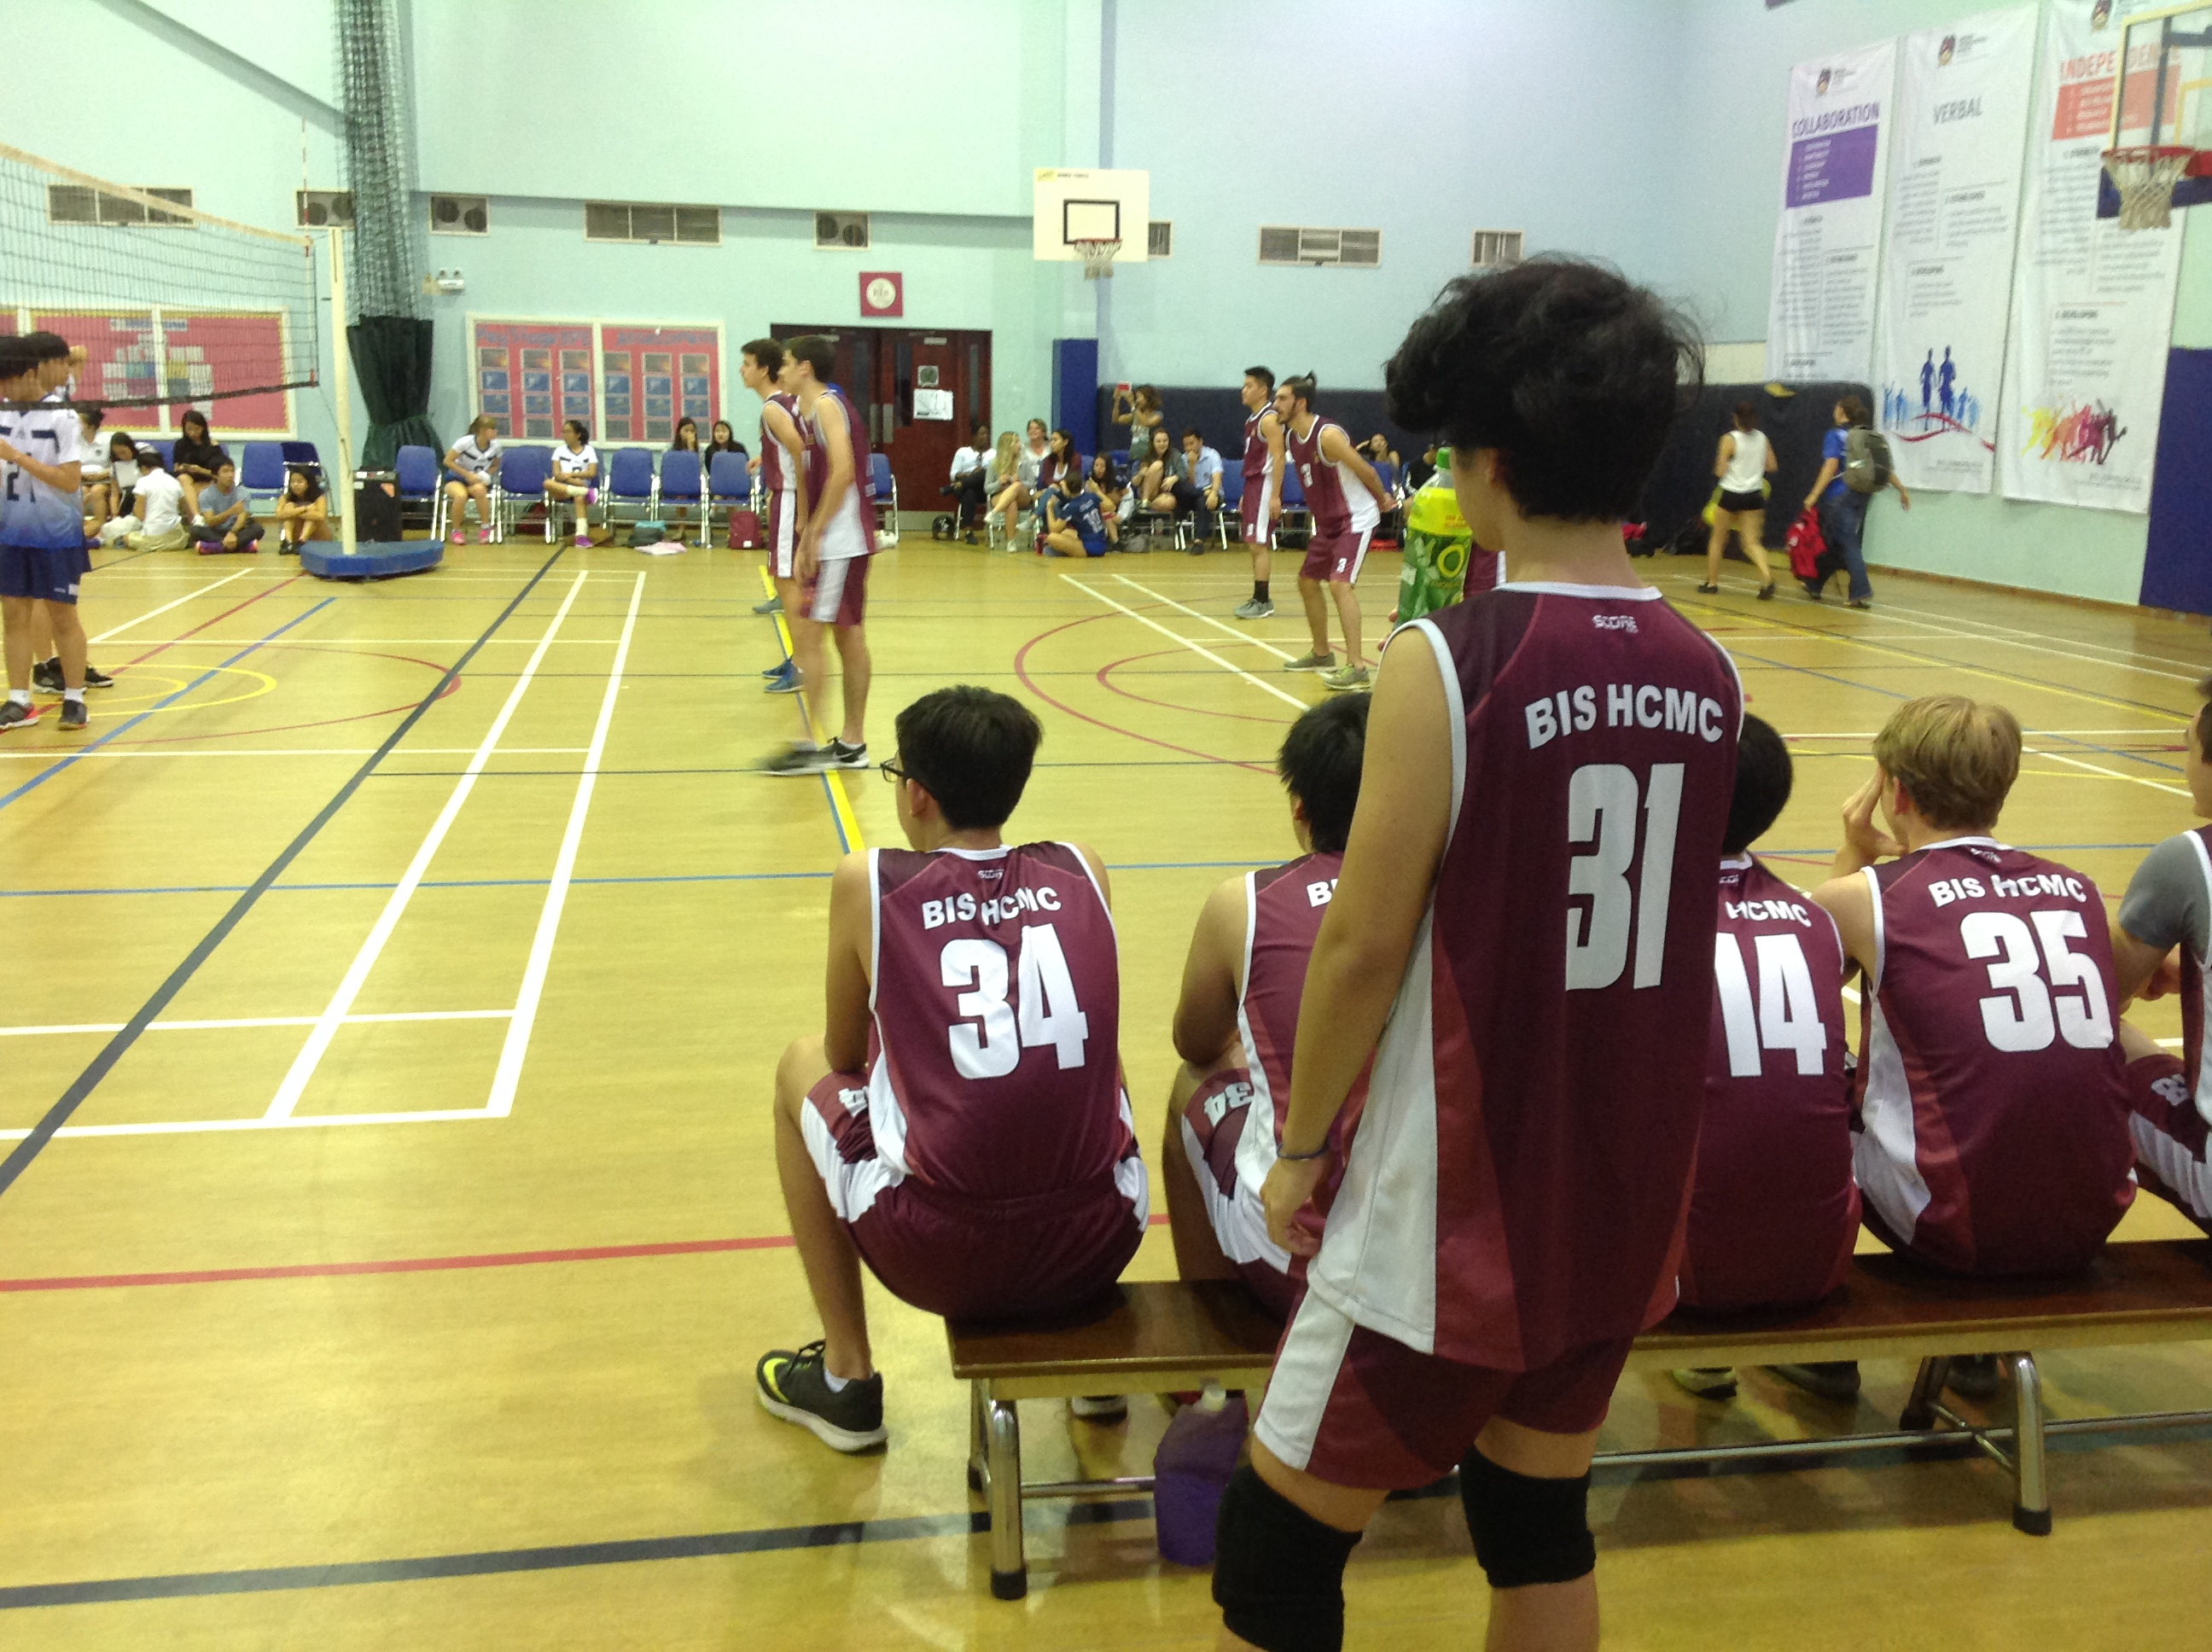 U19 Boys Volleyball v ISHCMC